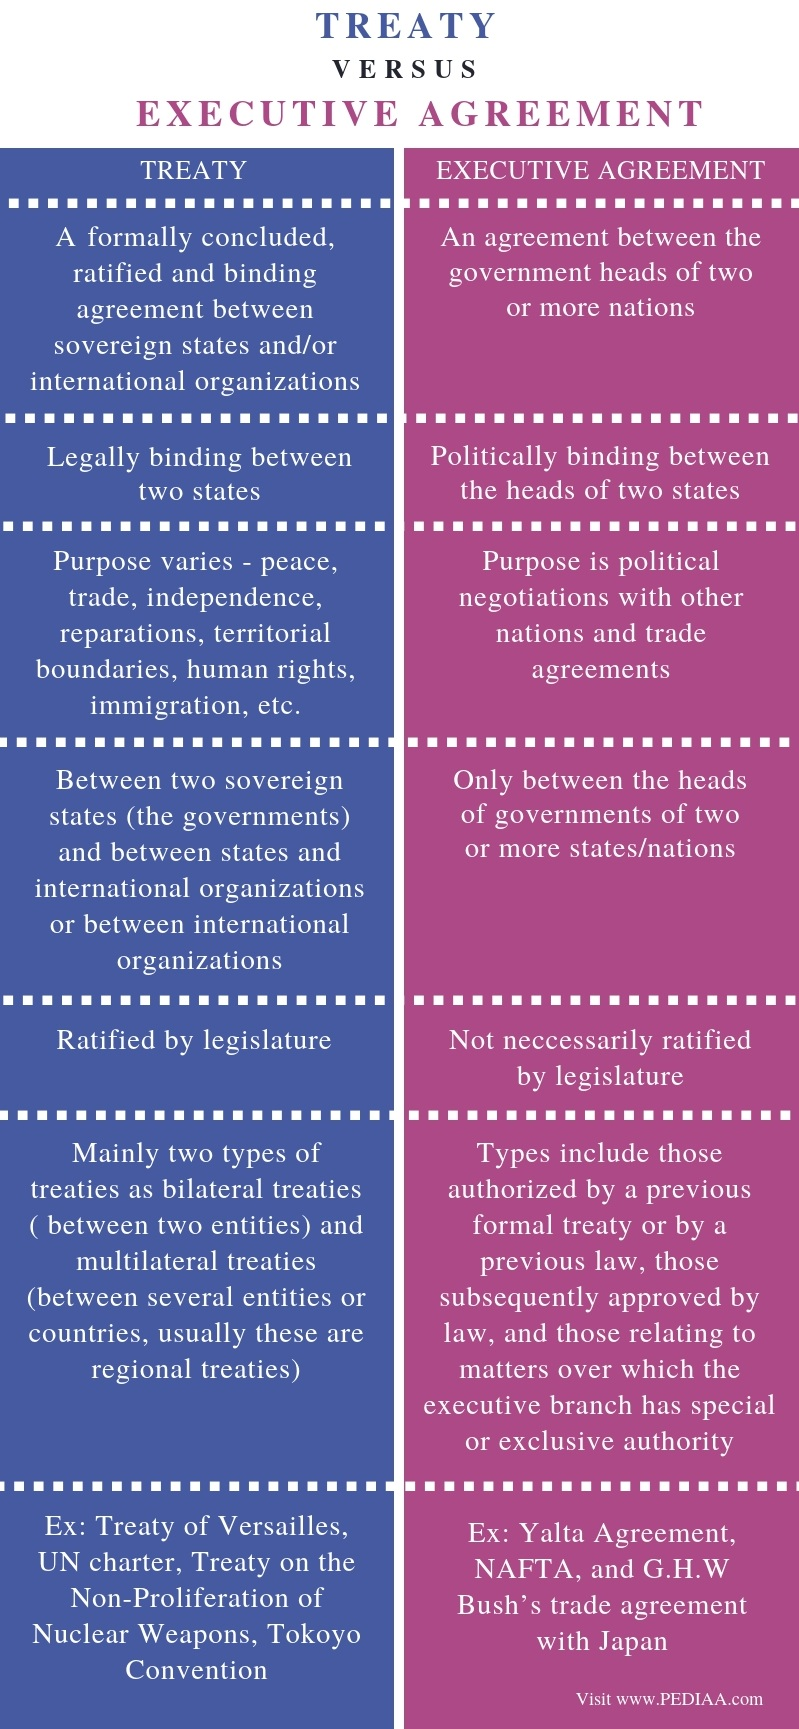 Difference Between Treaty and Executive Agreement - Comparison Summary